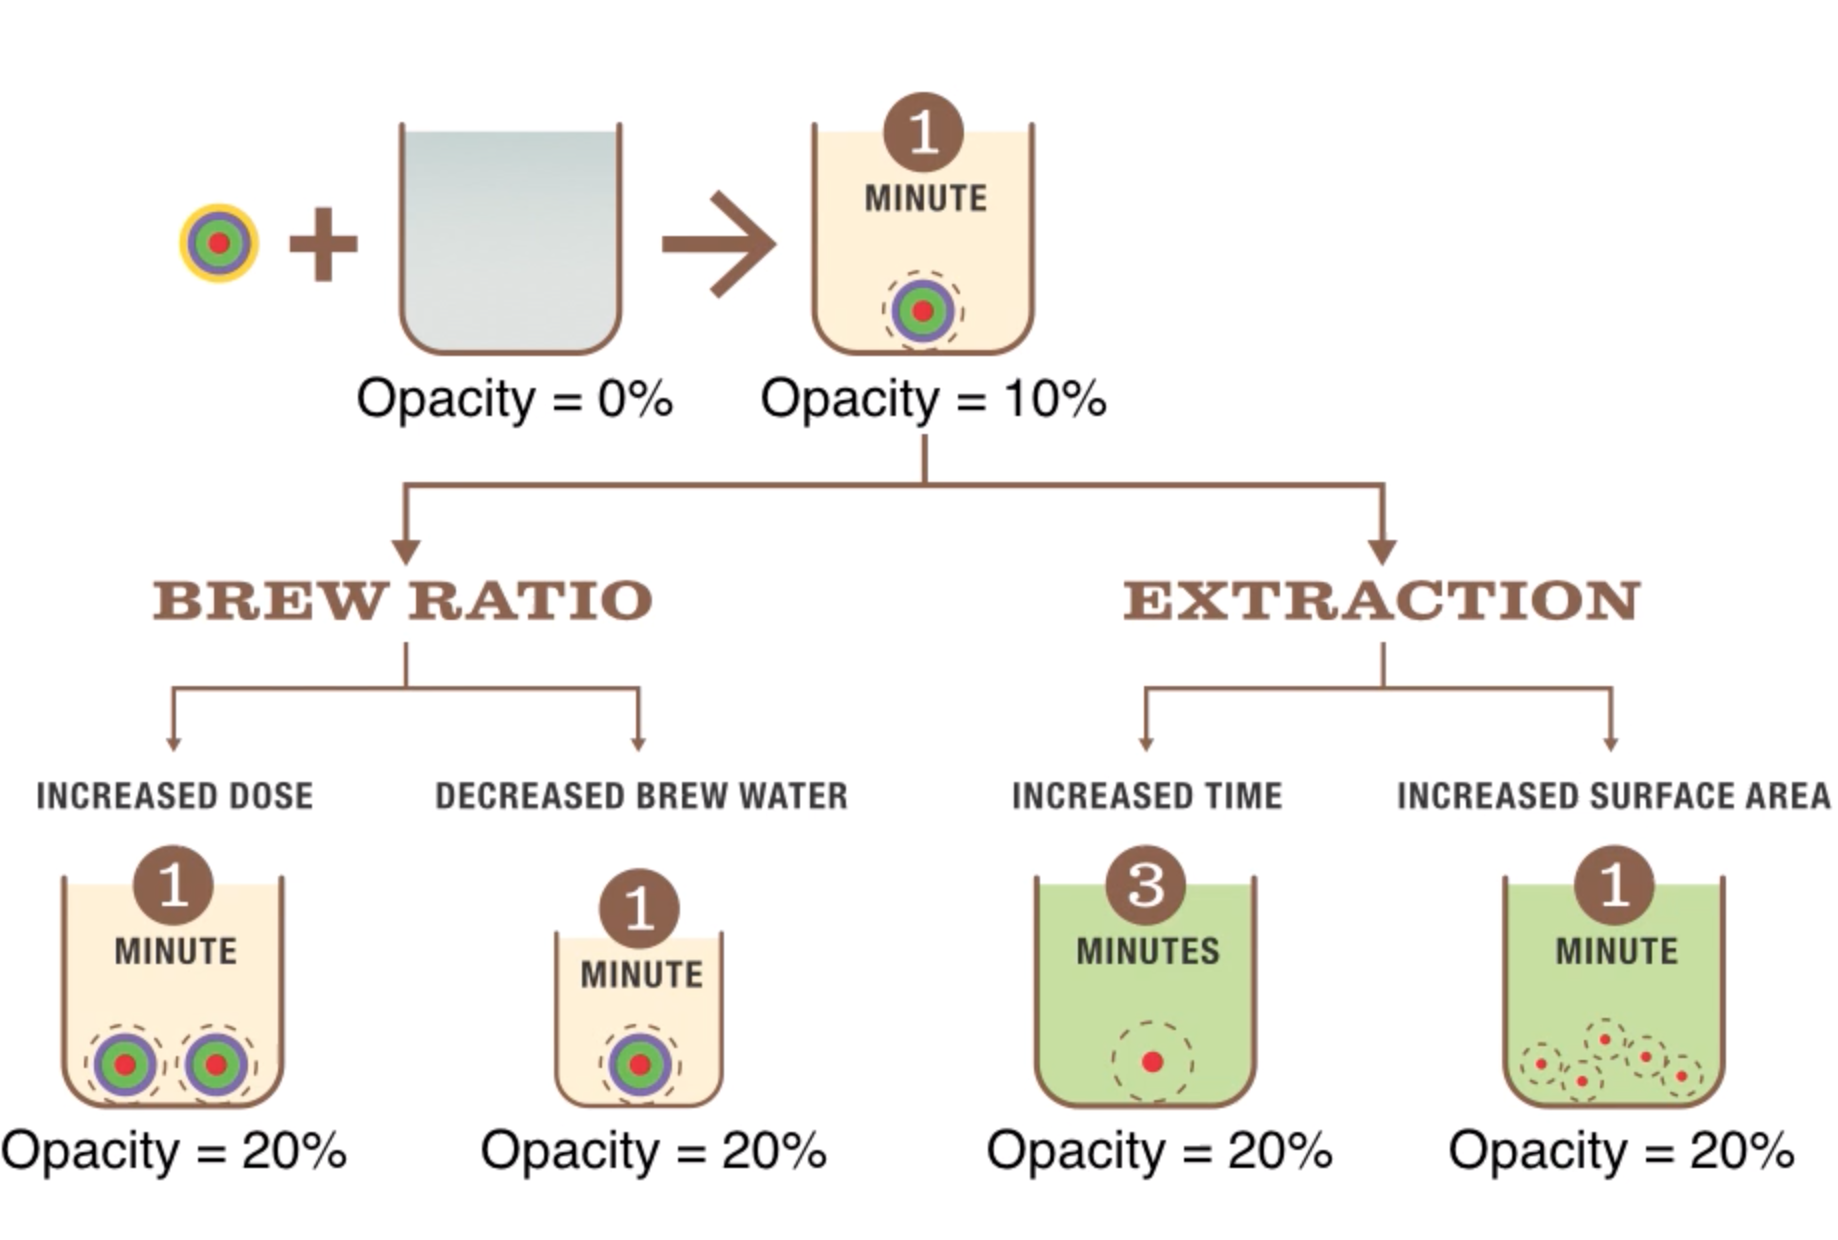 The relationship between TDS, brew ratio and extraction